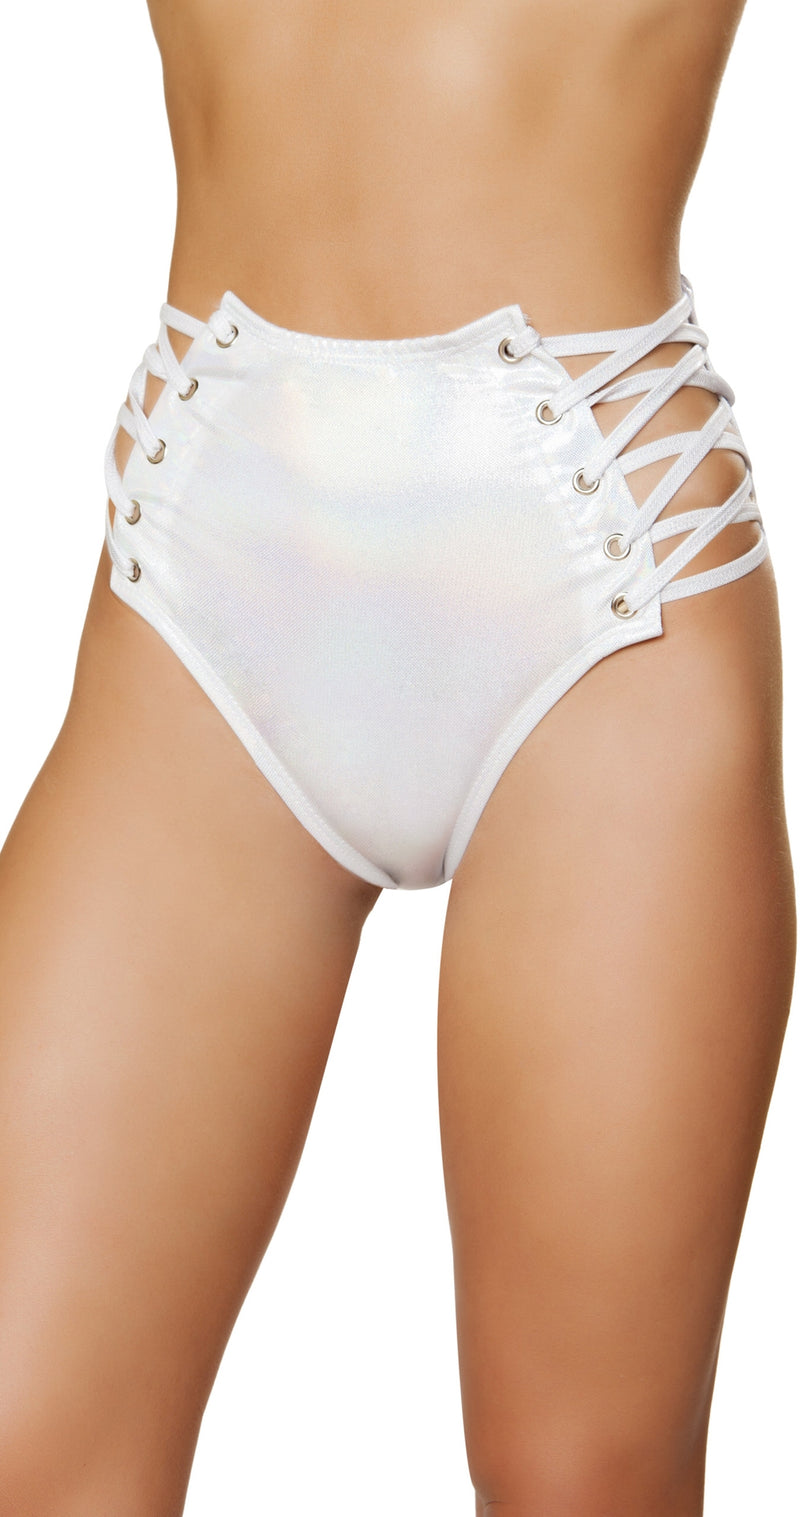 RM-3604 Iridescent high waisted shorts white